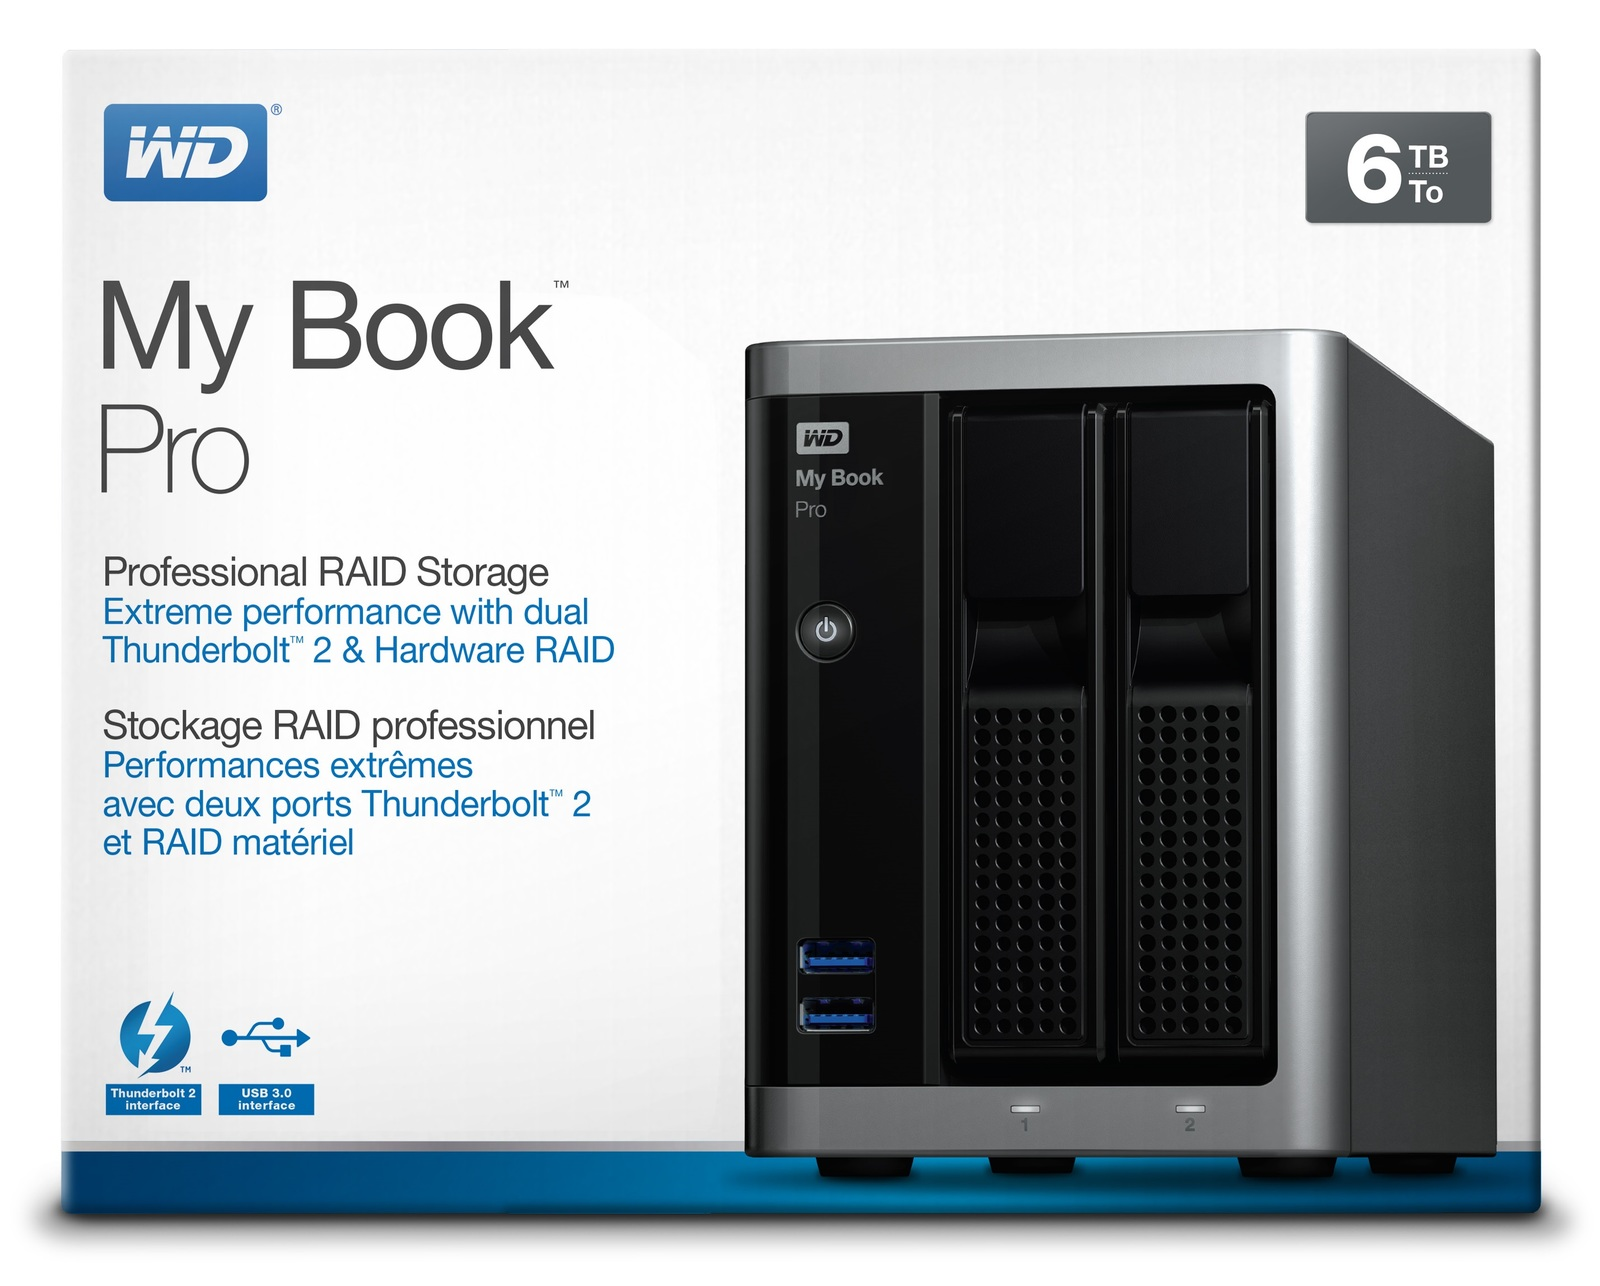 6tb Wd My Book Pro External Hdd At Mighty Ape Nz Usb 30 Harddisk Image